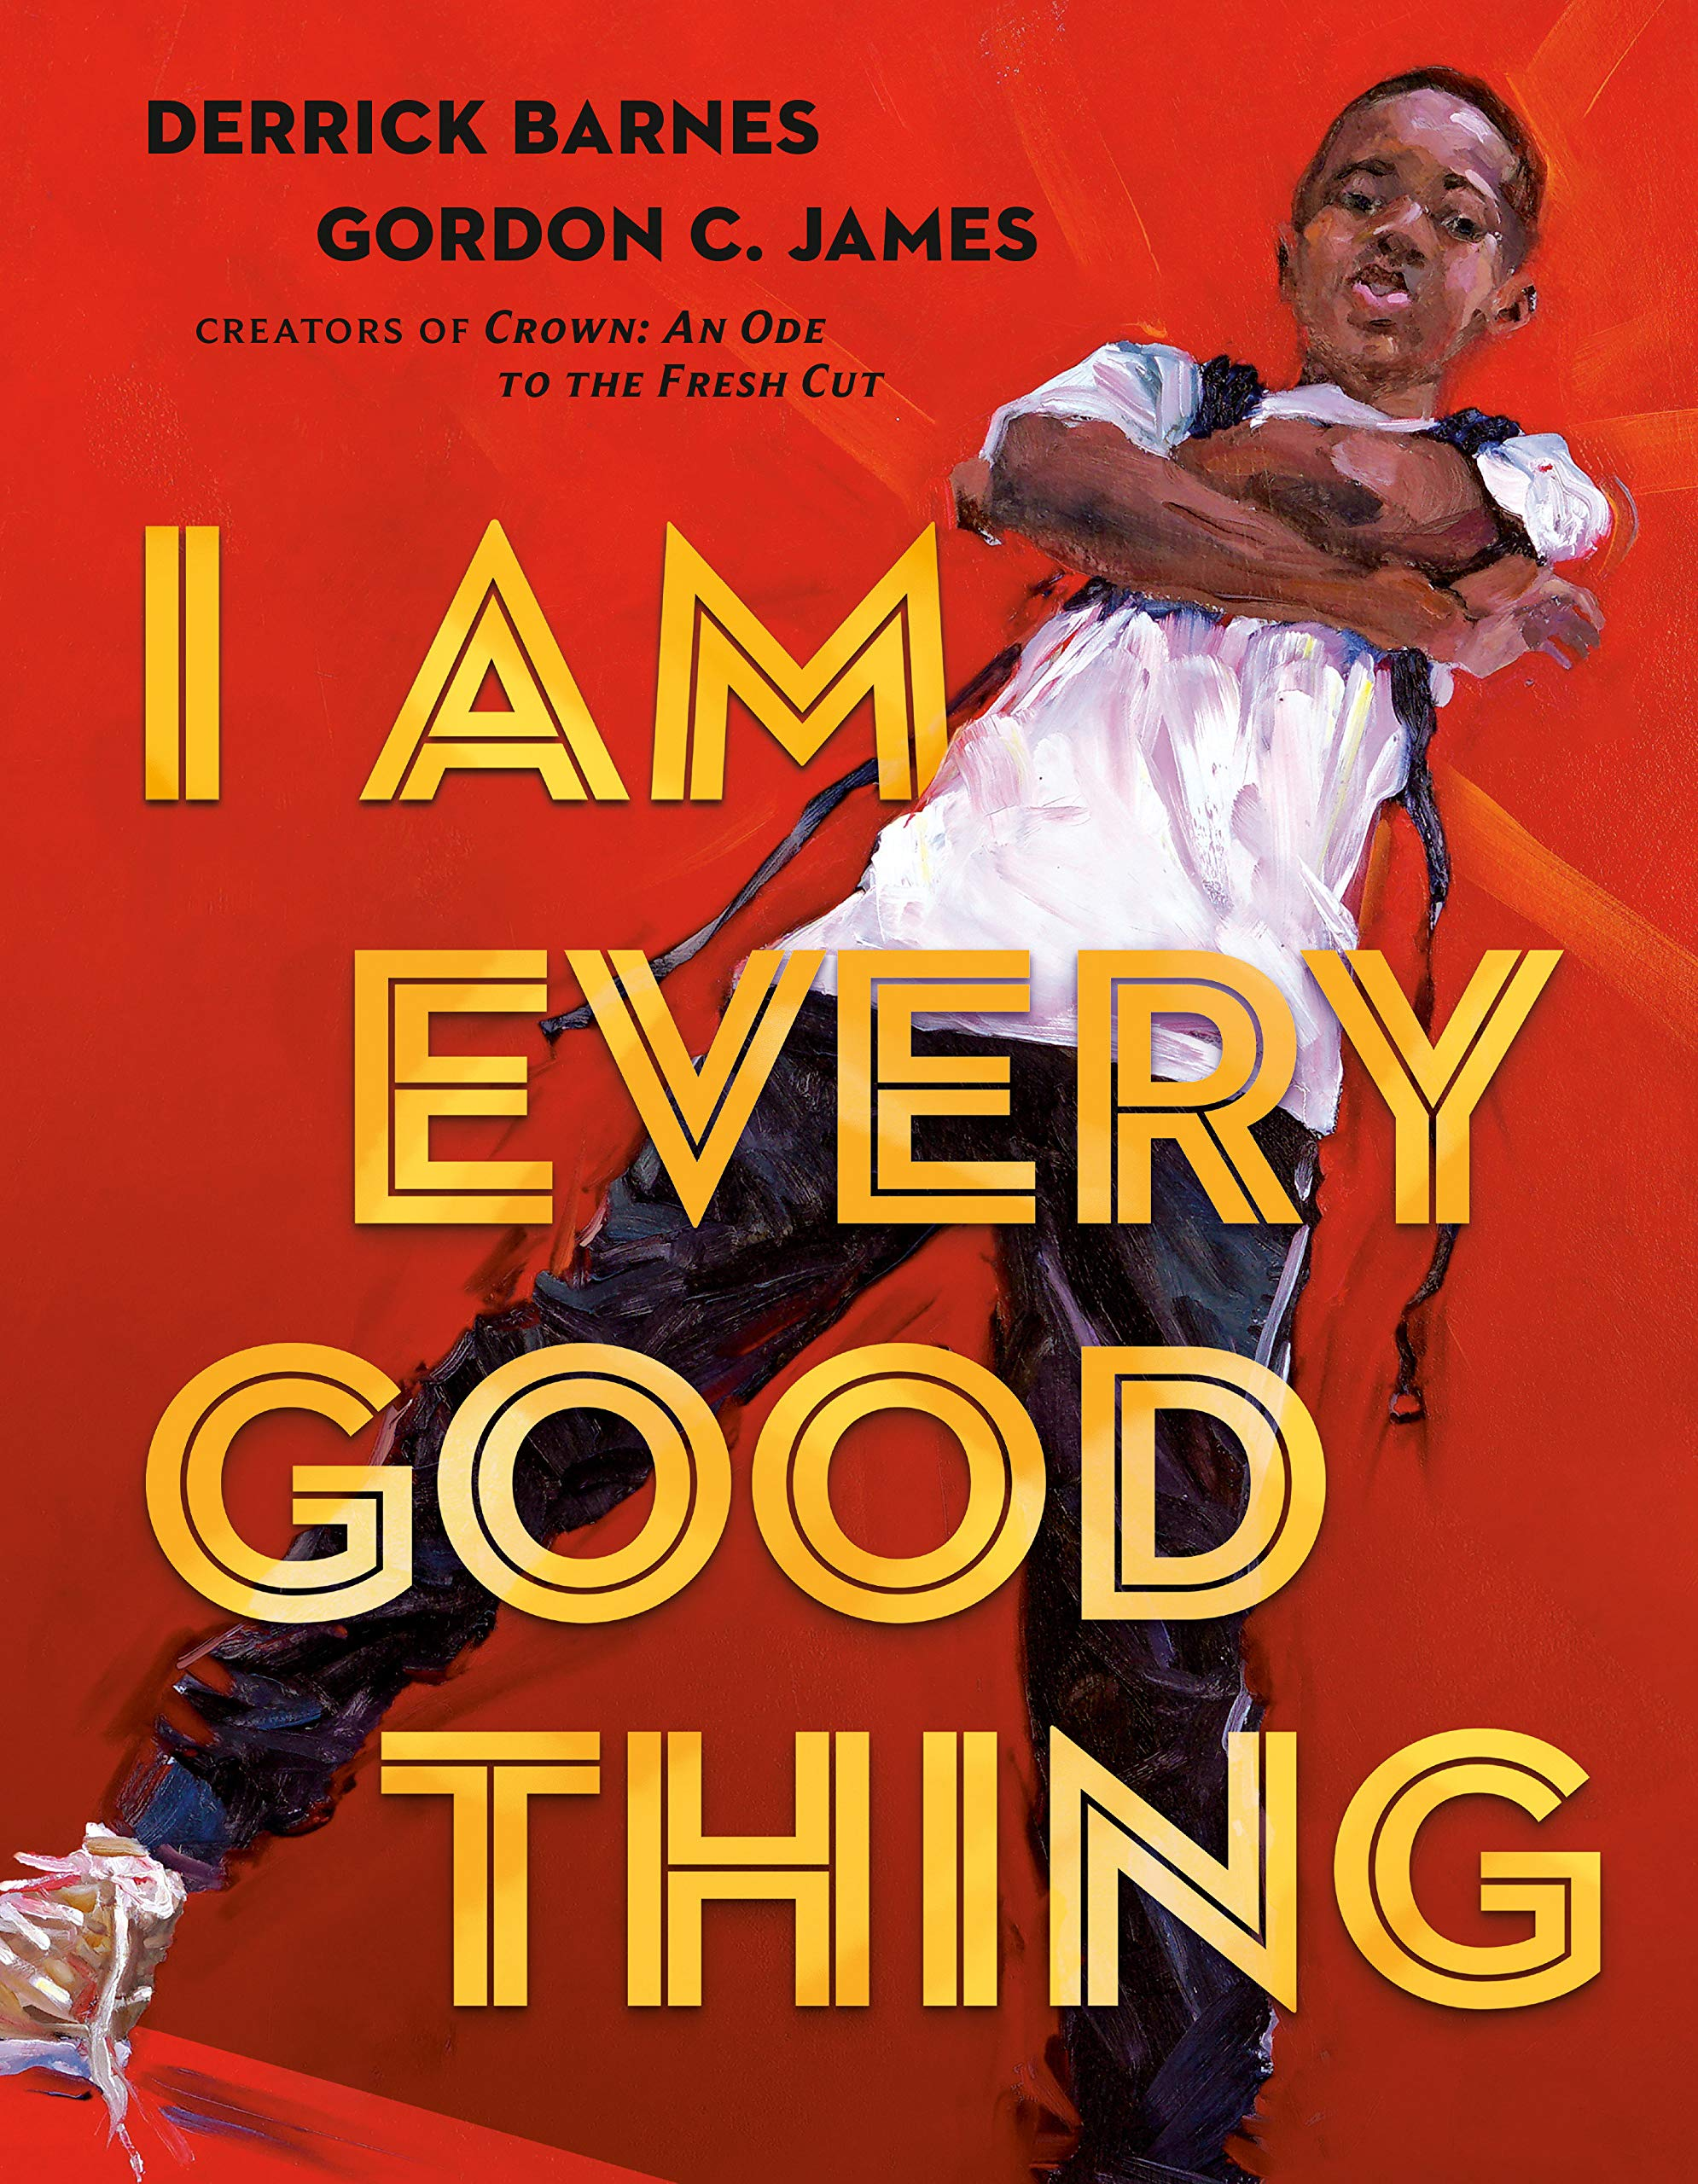 I Am Every Good Thing by Derrick Barnes